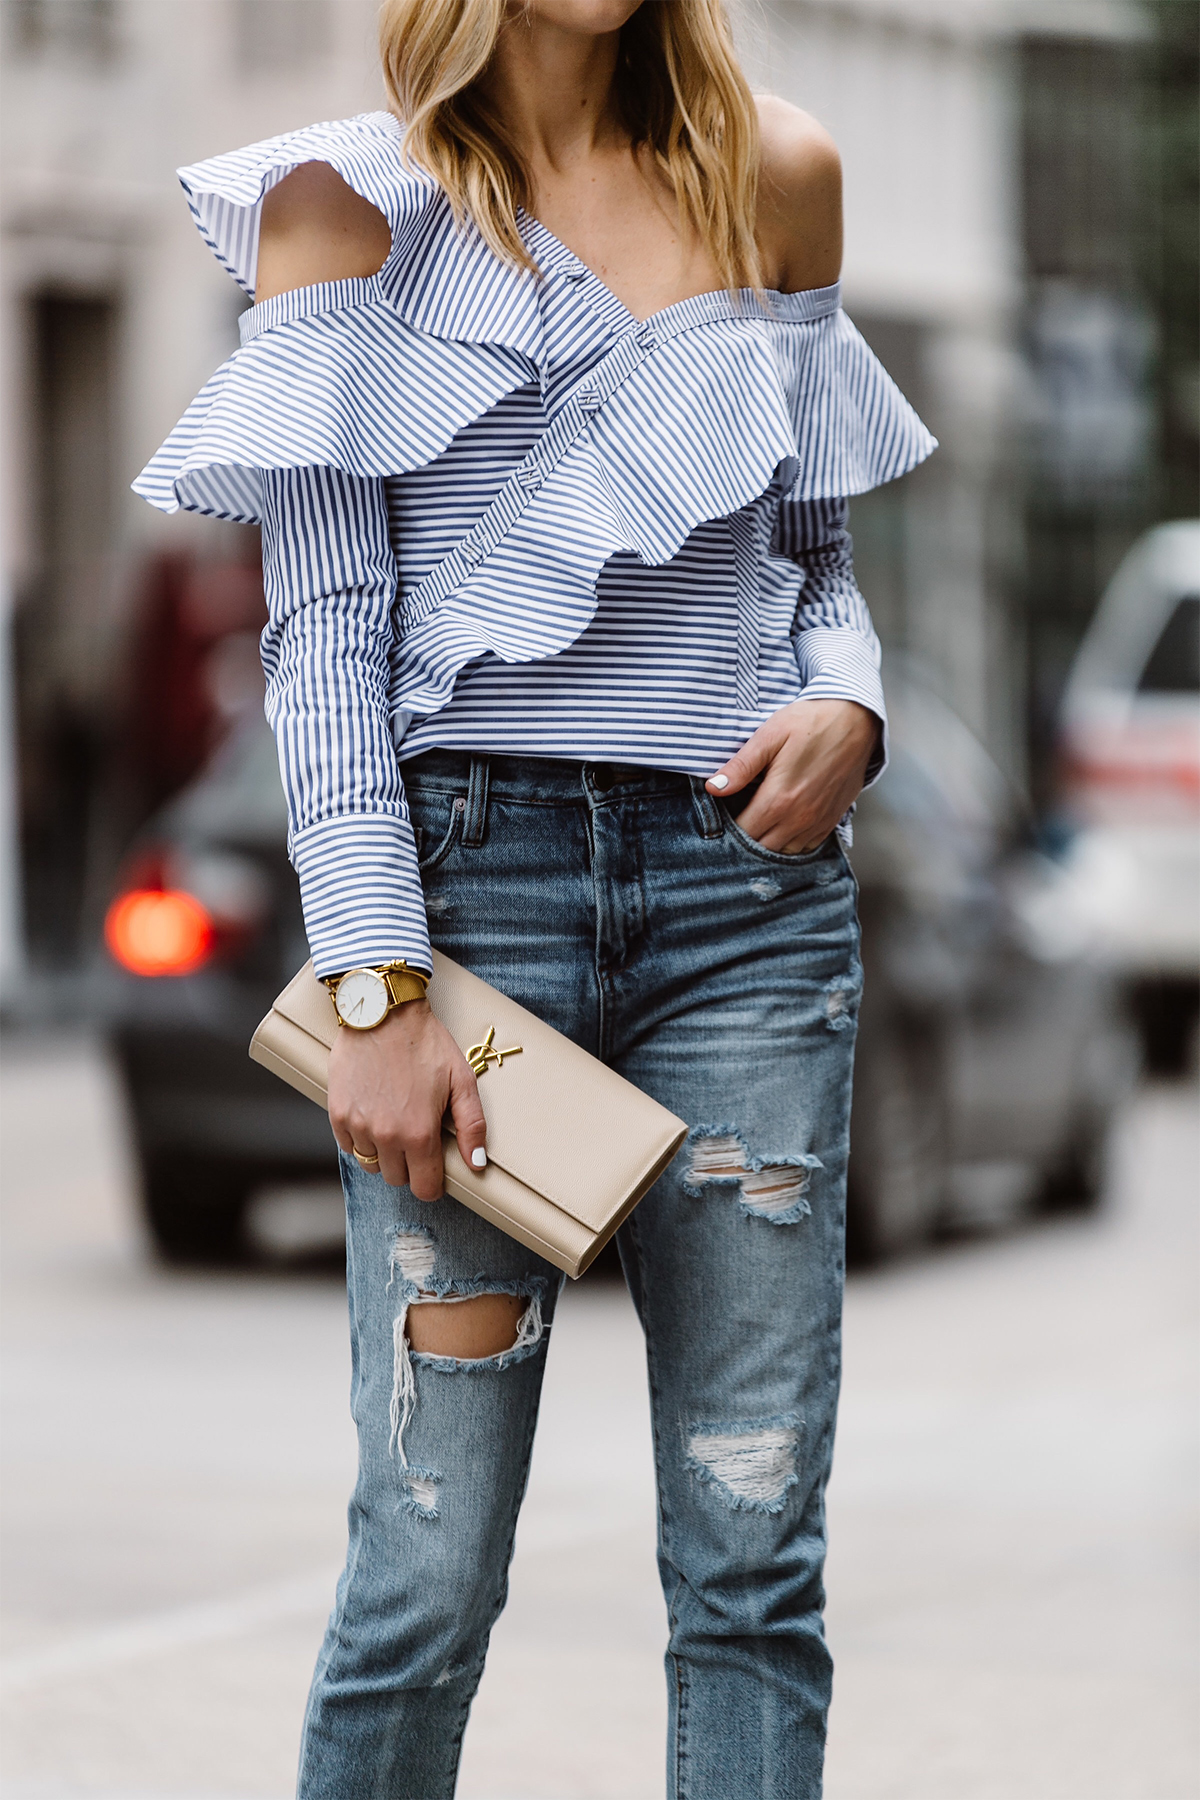 Fashion Jackson, Dallas Blogger, Fashion Blogger, Street Style, Self-Portrait Asymmetrical Ruffle Top, Blue White Stripe Top, Blanknyc Ms Throwback Relaxed Denim Ripped Jeans, Saint Laurent Monogram Clutch